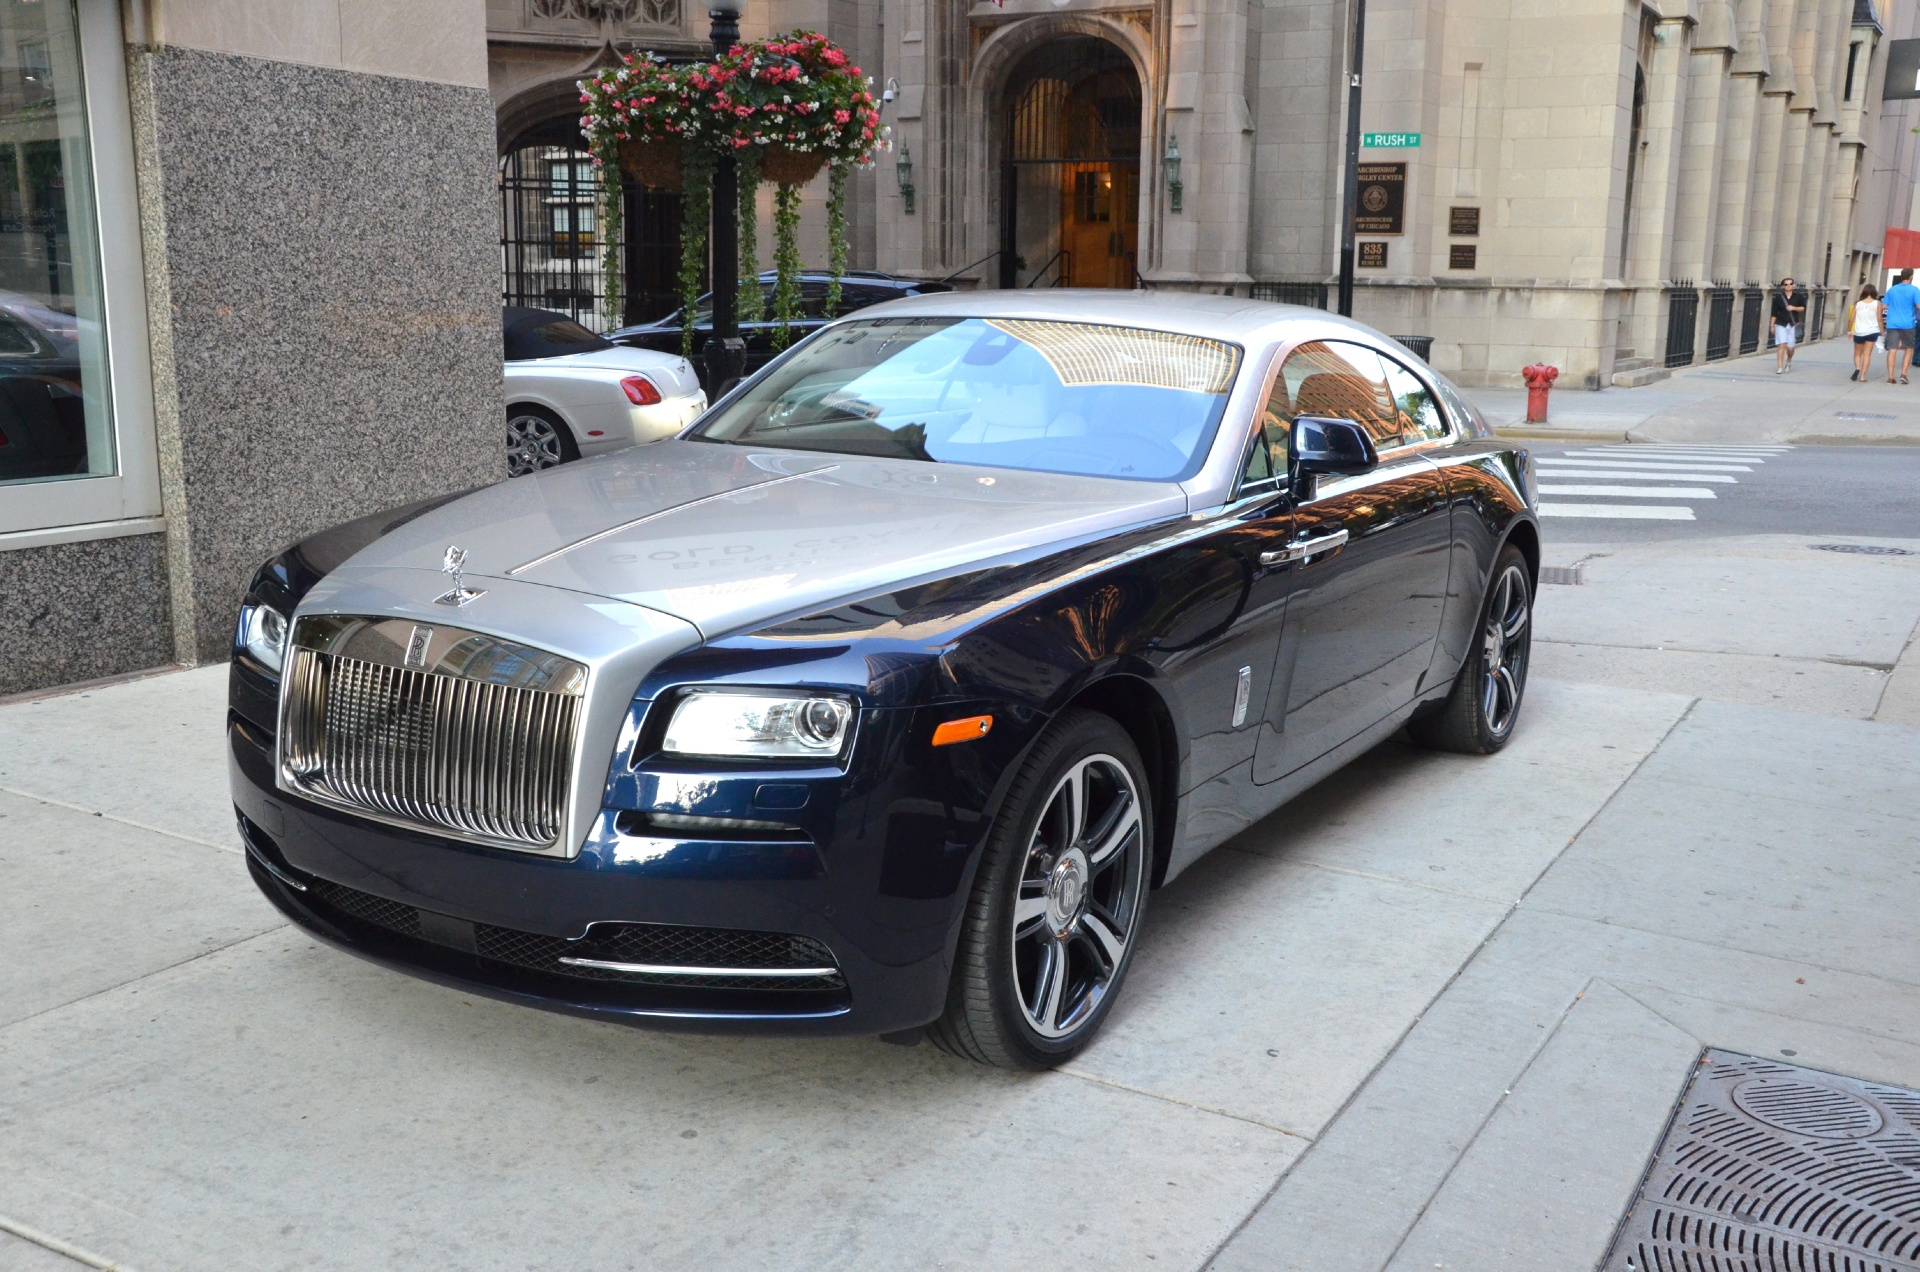 brief review of 2014 rolls-royce wraith - image #10